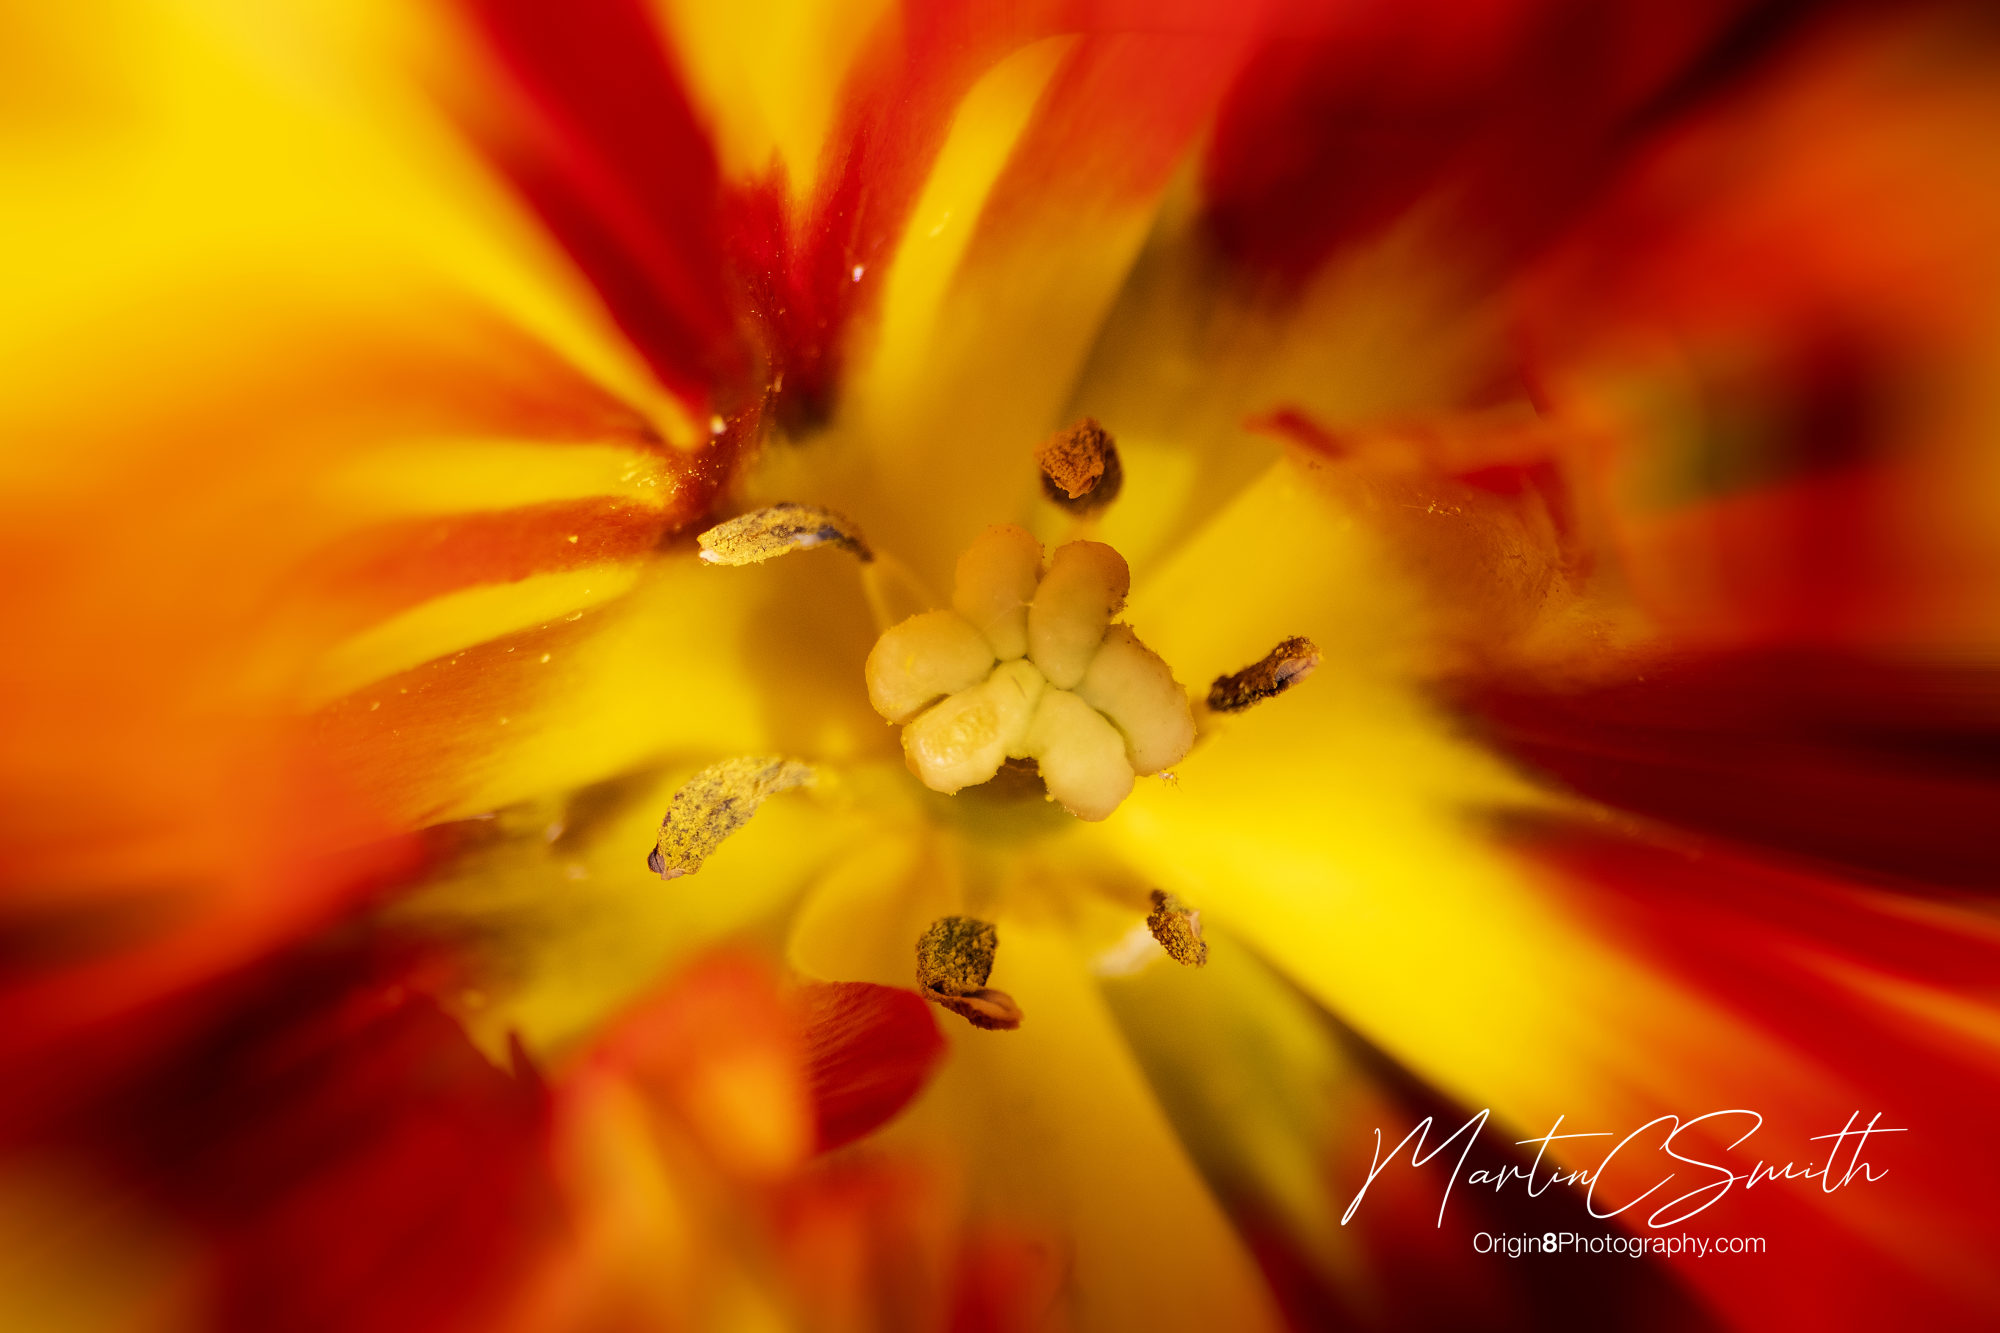 Red/Yellow flower detail